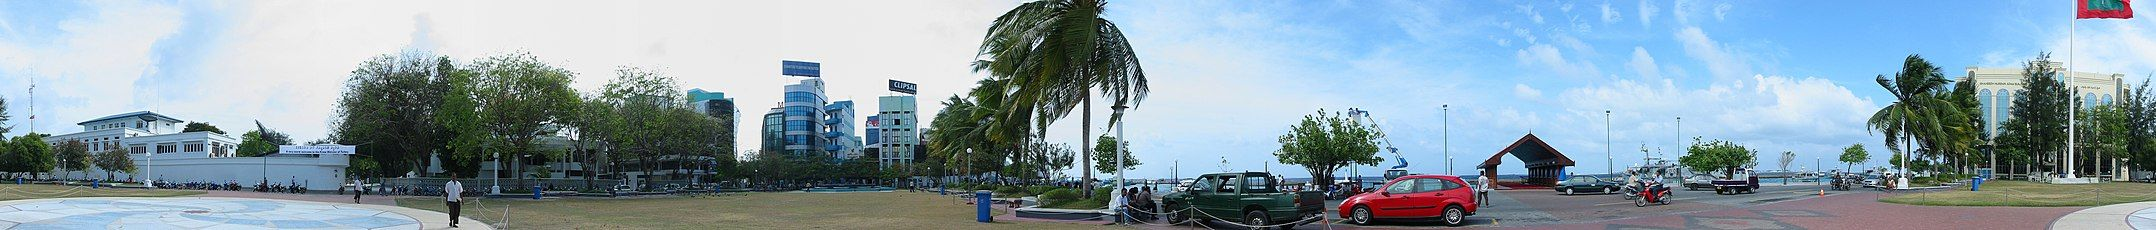 Panorama of the Republic Square and main jetty with MNDF Headquarters on the left and Police Headquarters on the right.